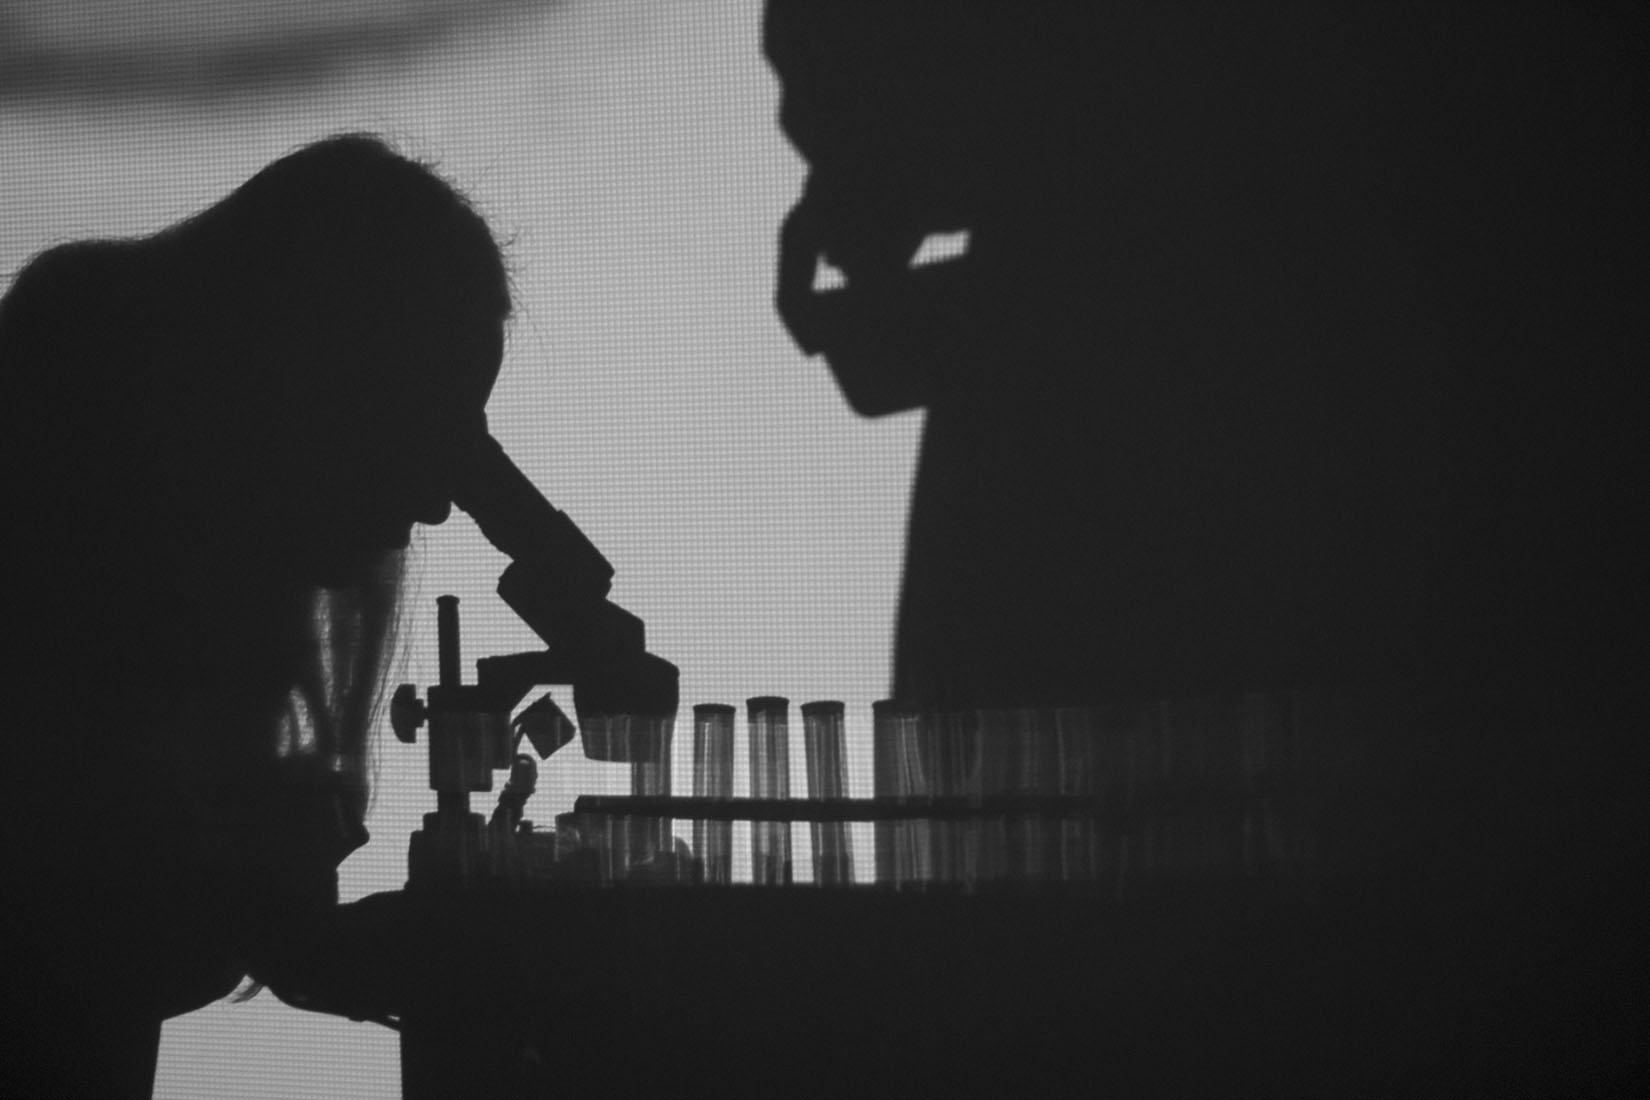 Woman with microscope, test tubes, contemporary art, installation, Scale Free Network, The Elaboratorium, silhouette, black and white